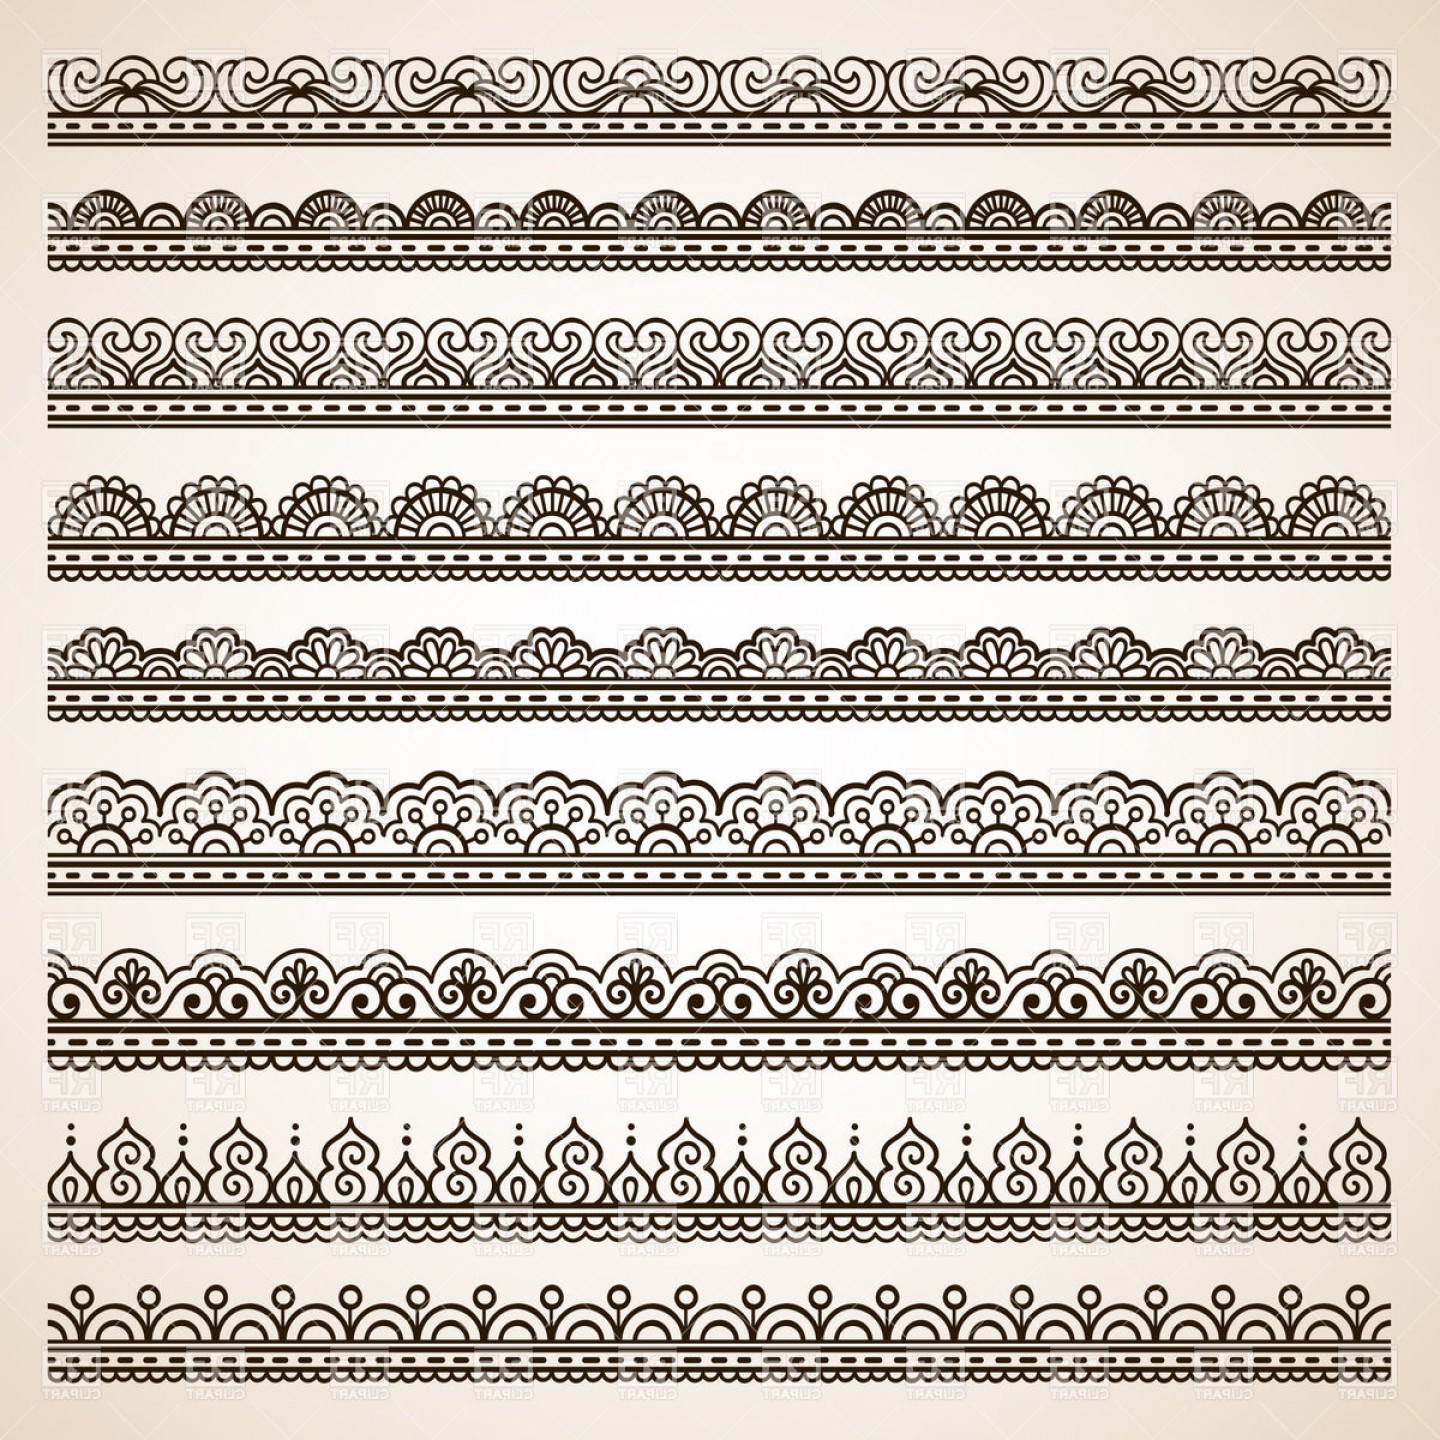 1440x1440 Lace Style Ornate Borders Vector Clipart Arenawp